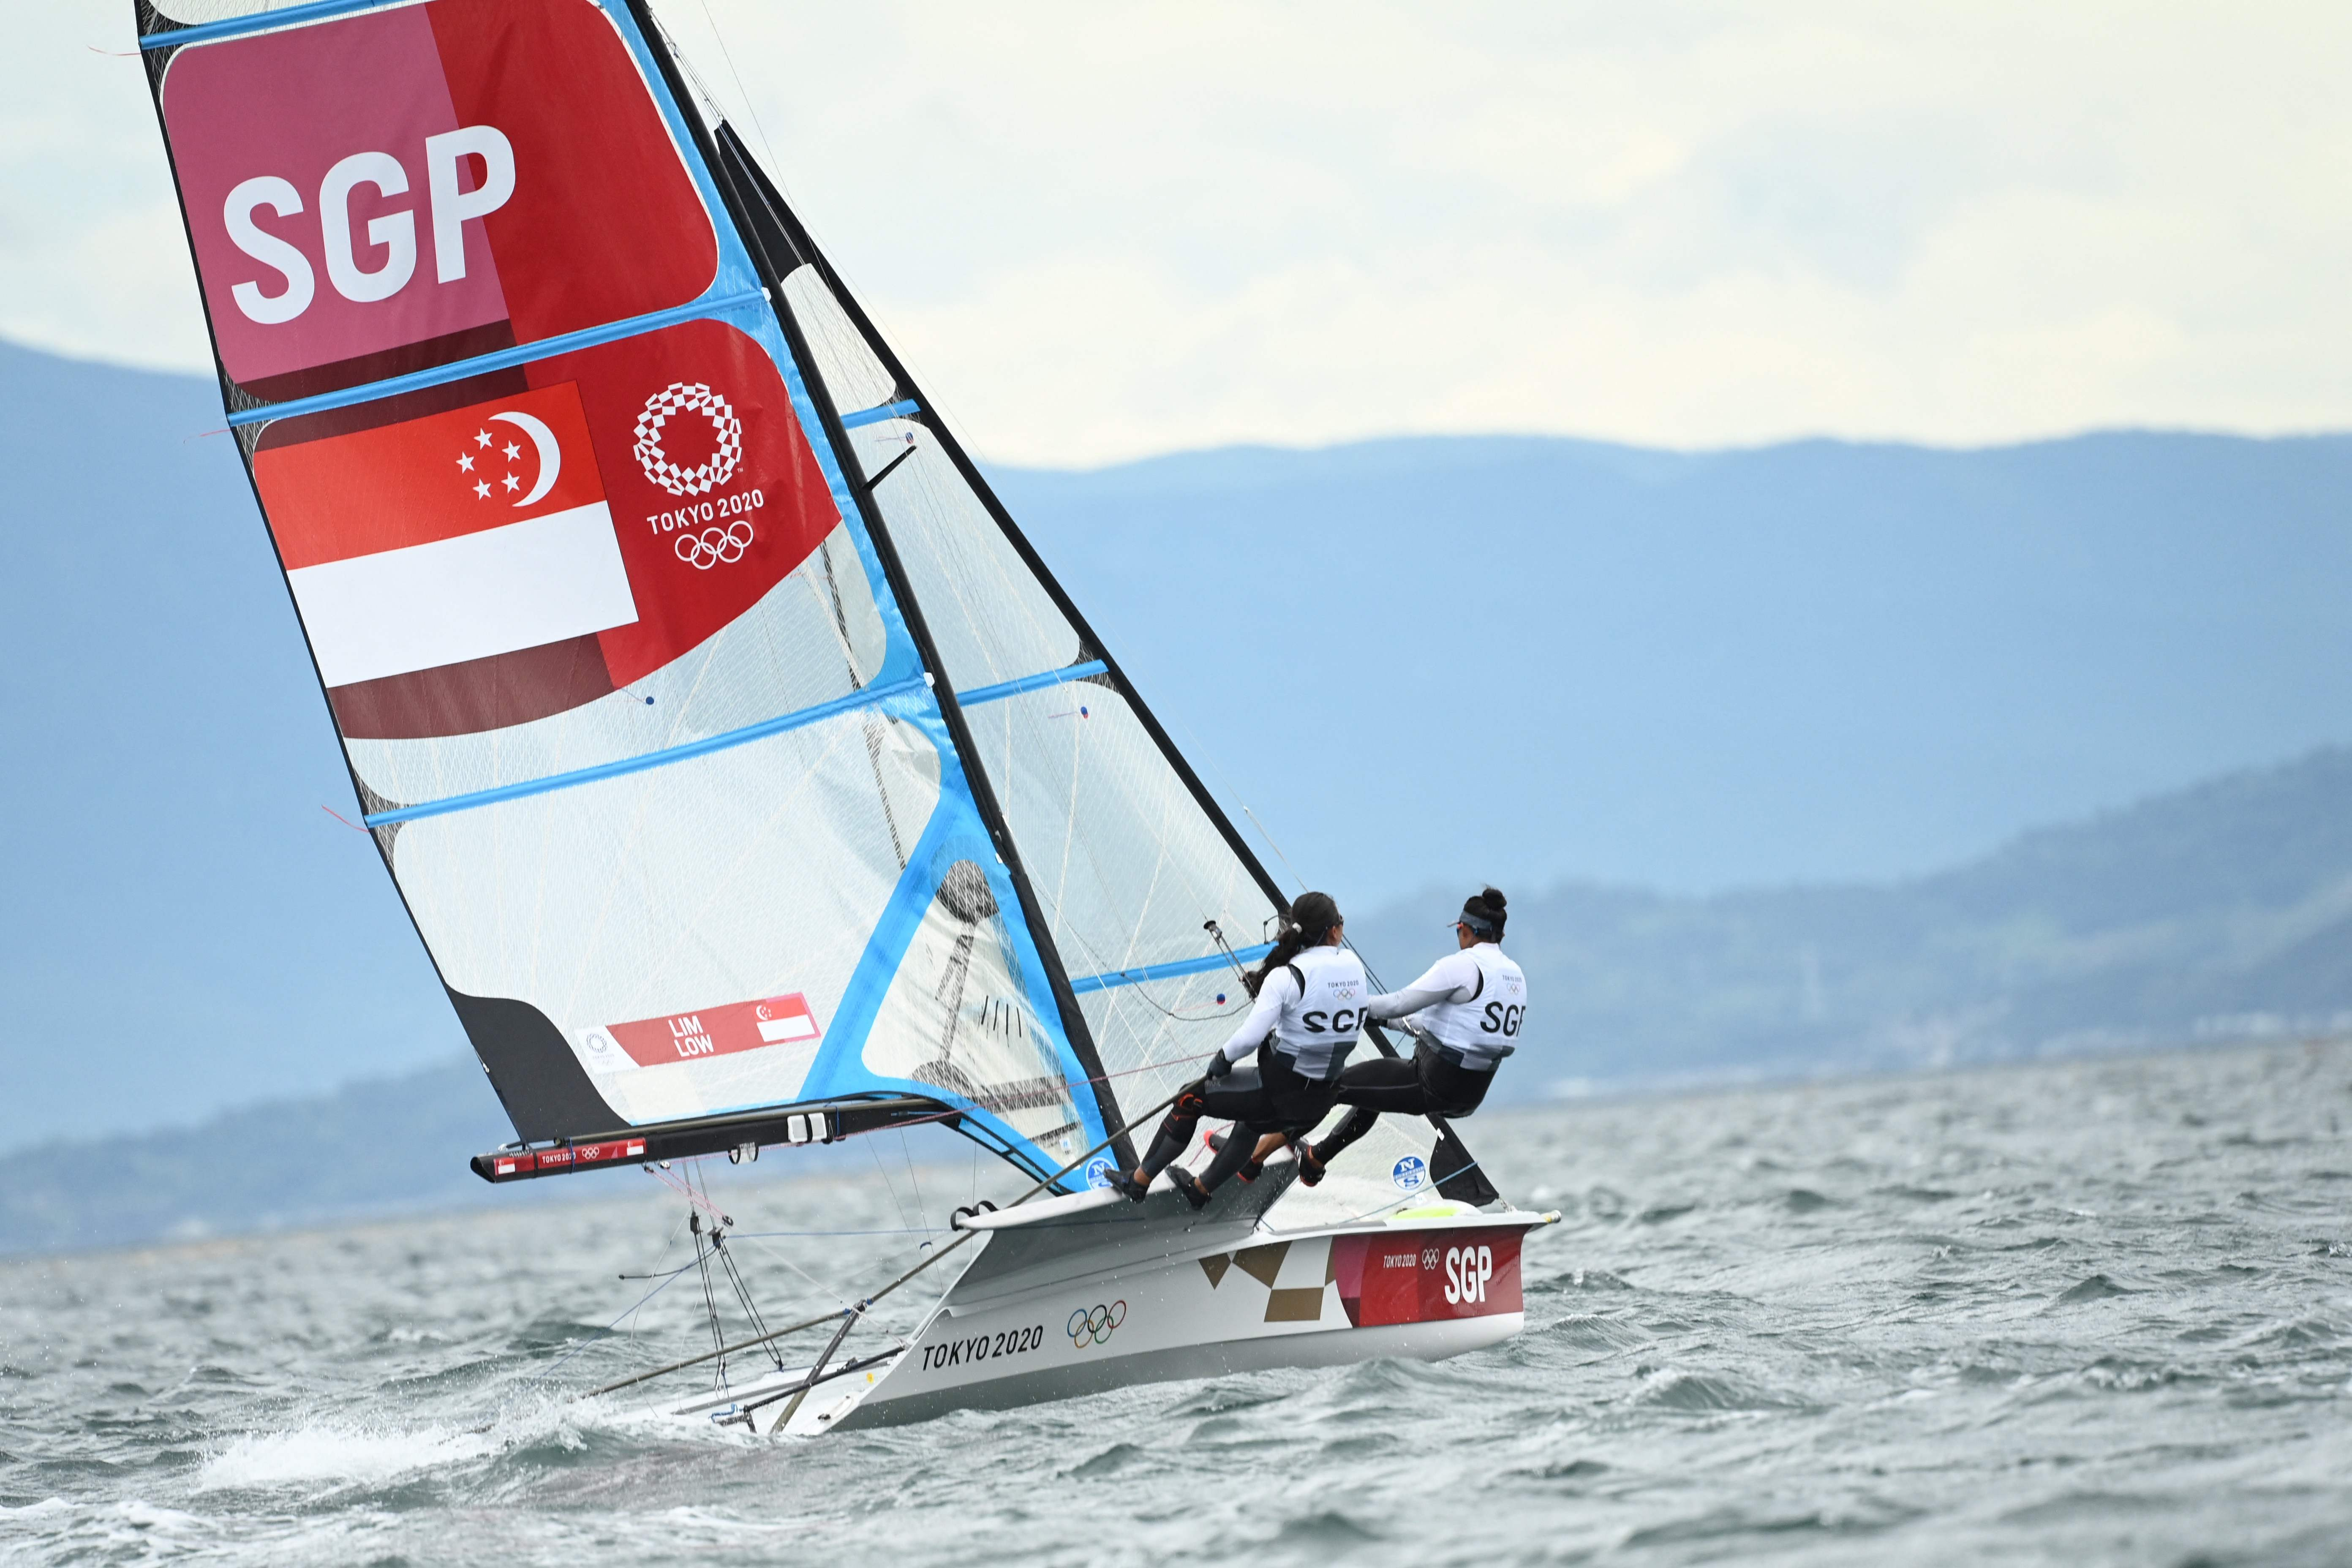 Olympics: Sailors Lim and Low's historic achievement in Tokyo built on years of hard work